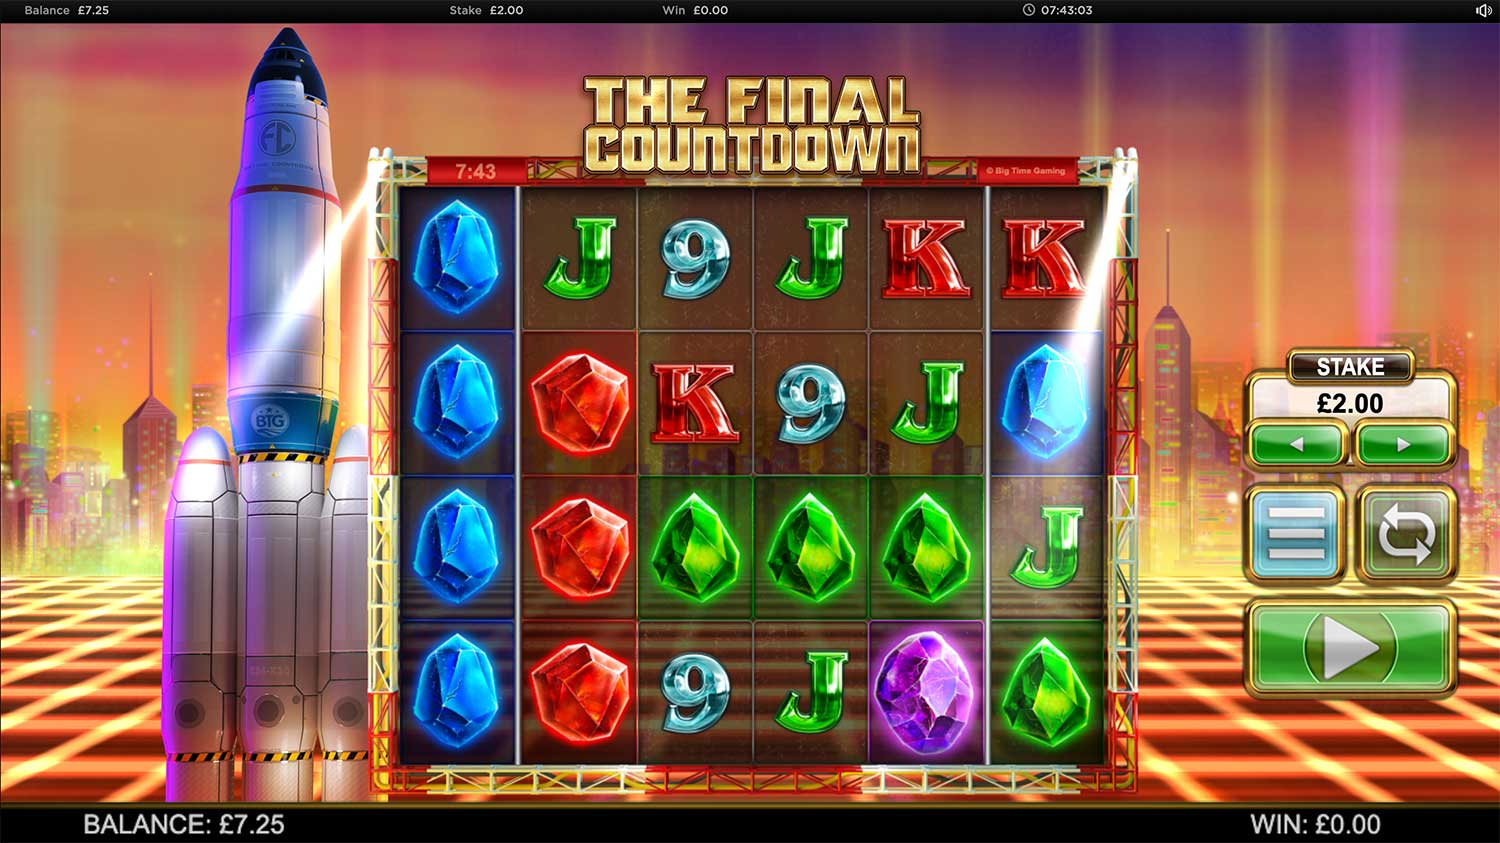 The Final Countdown Slot Review